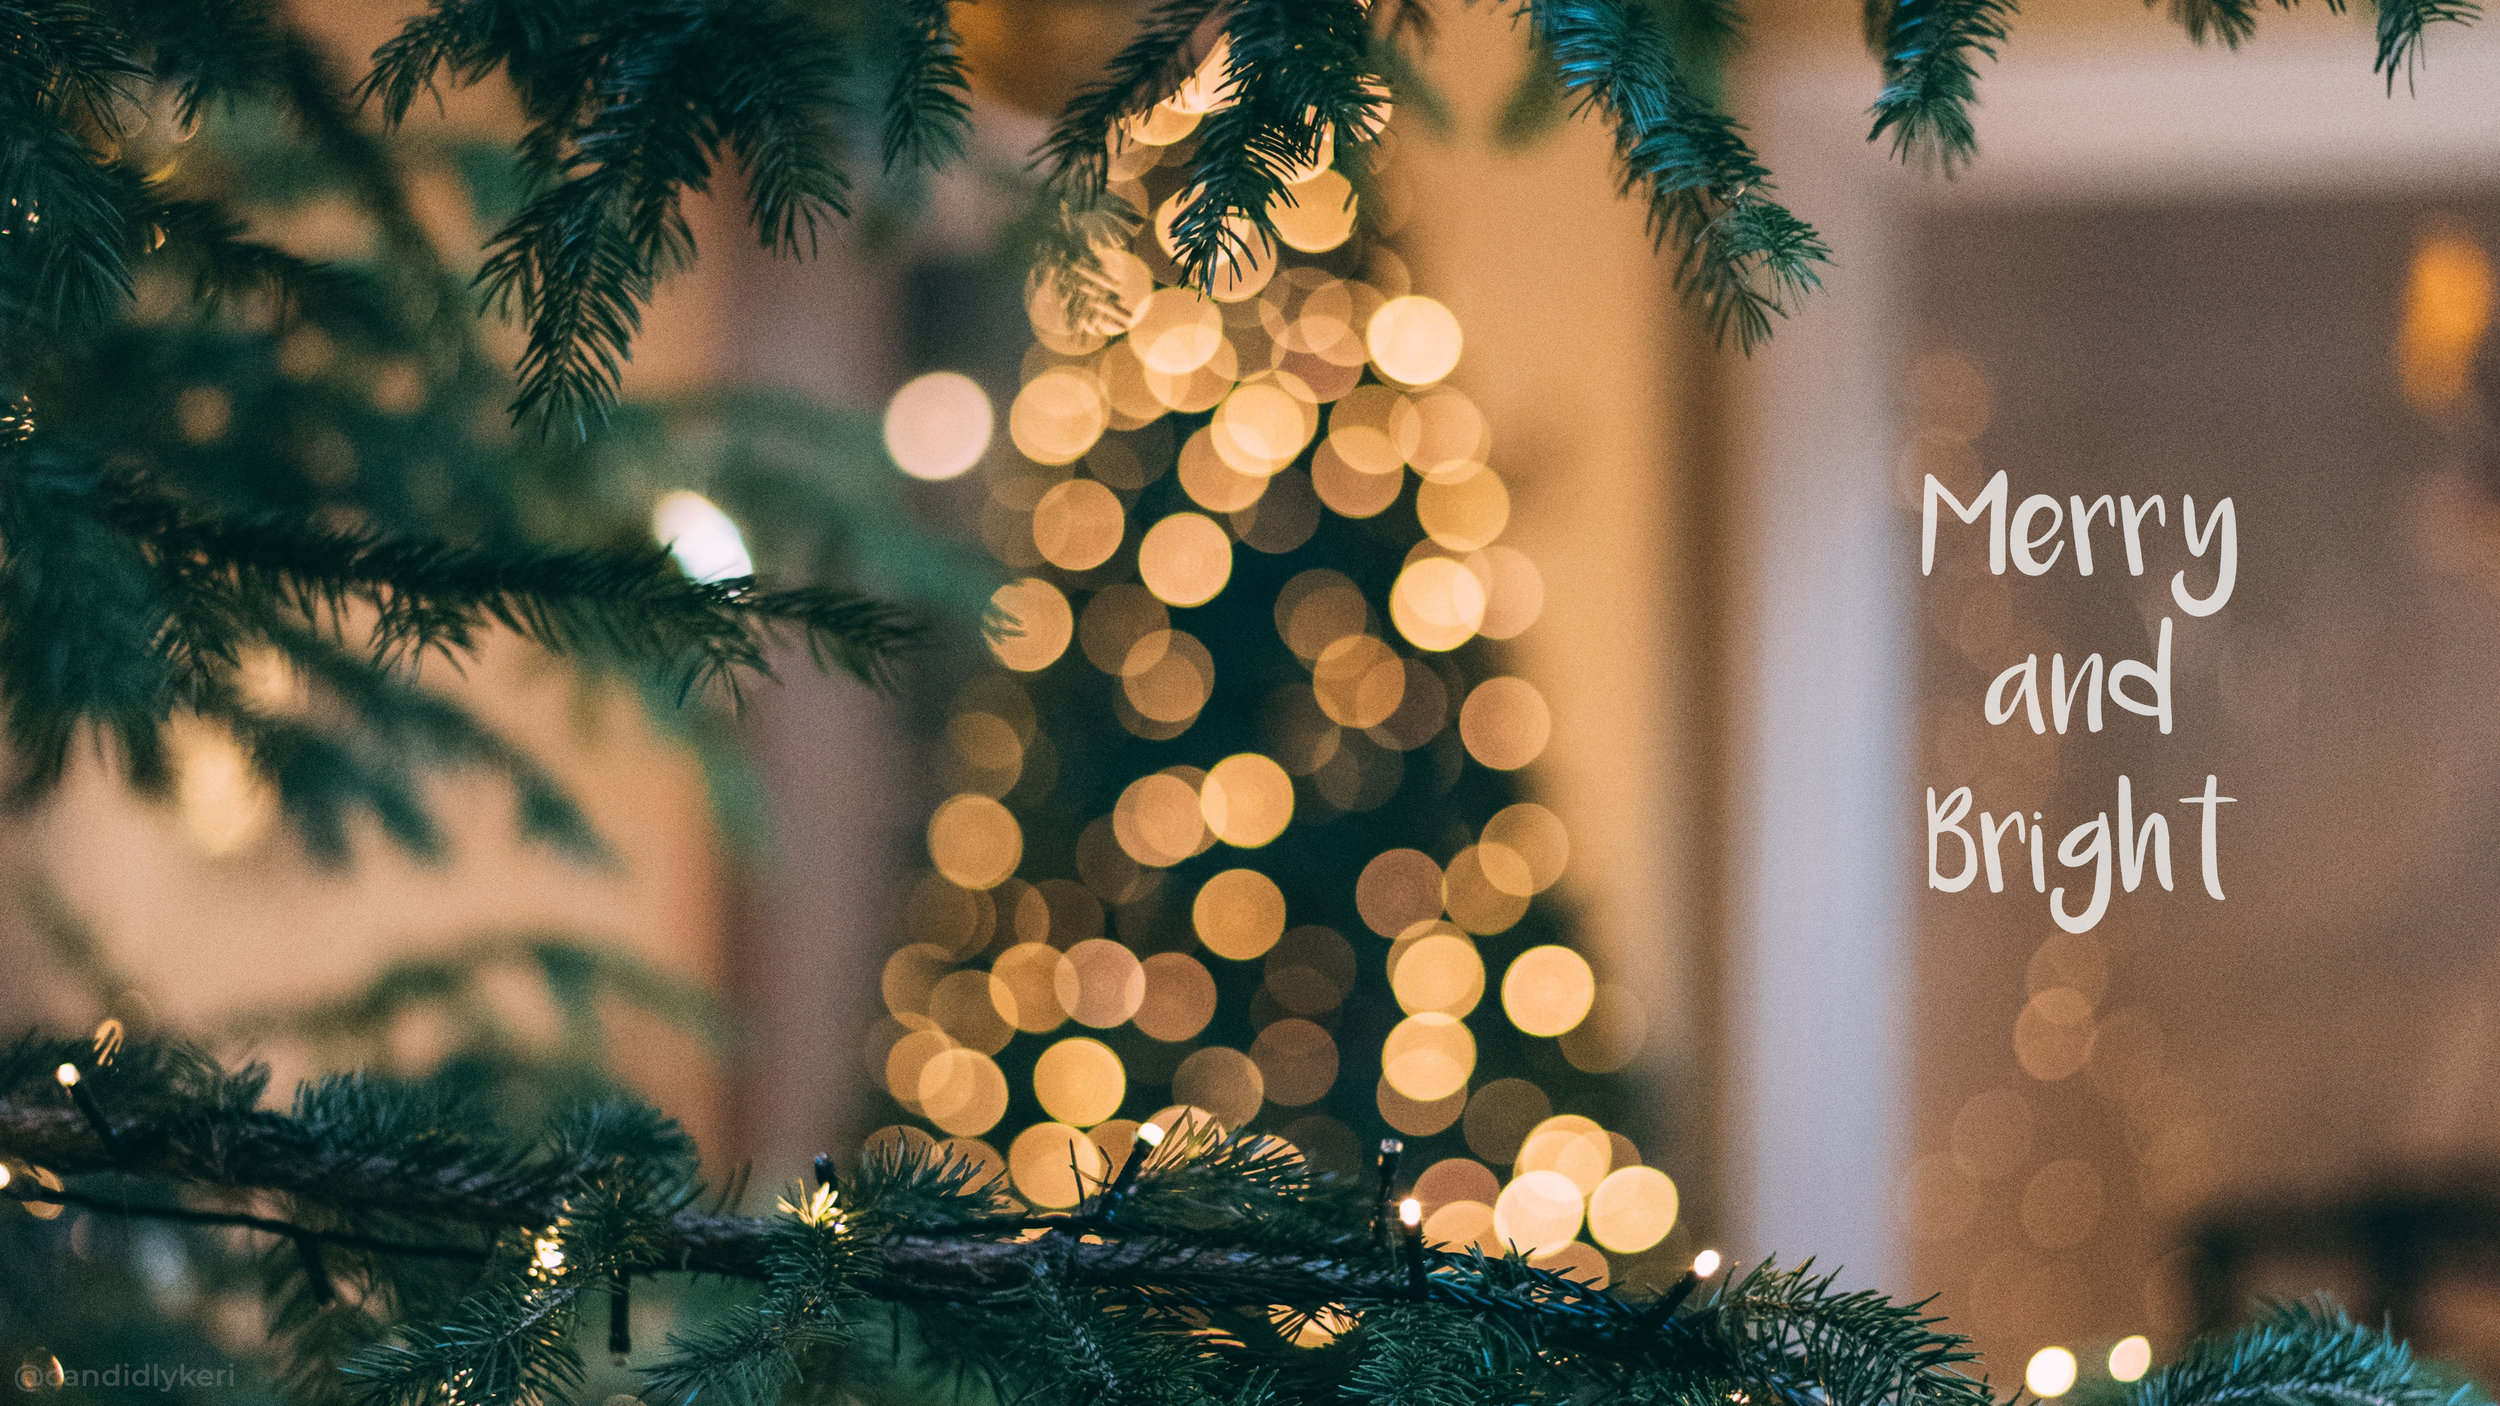 Christmas+Holiday+Wallpaper+Merry+And+Bright